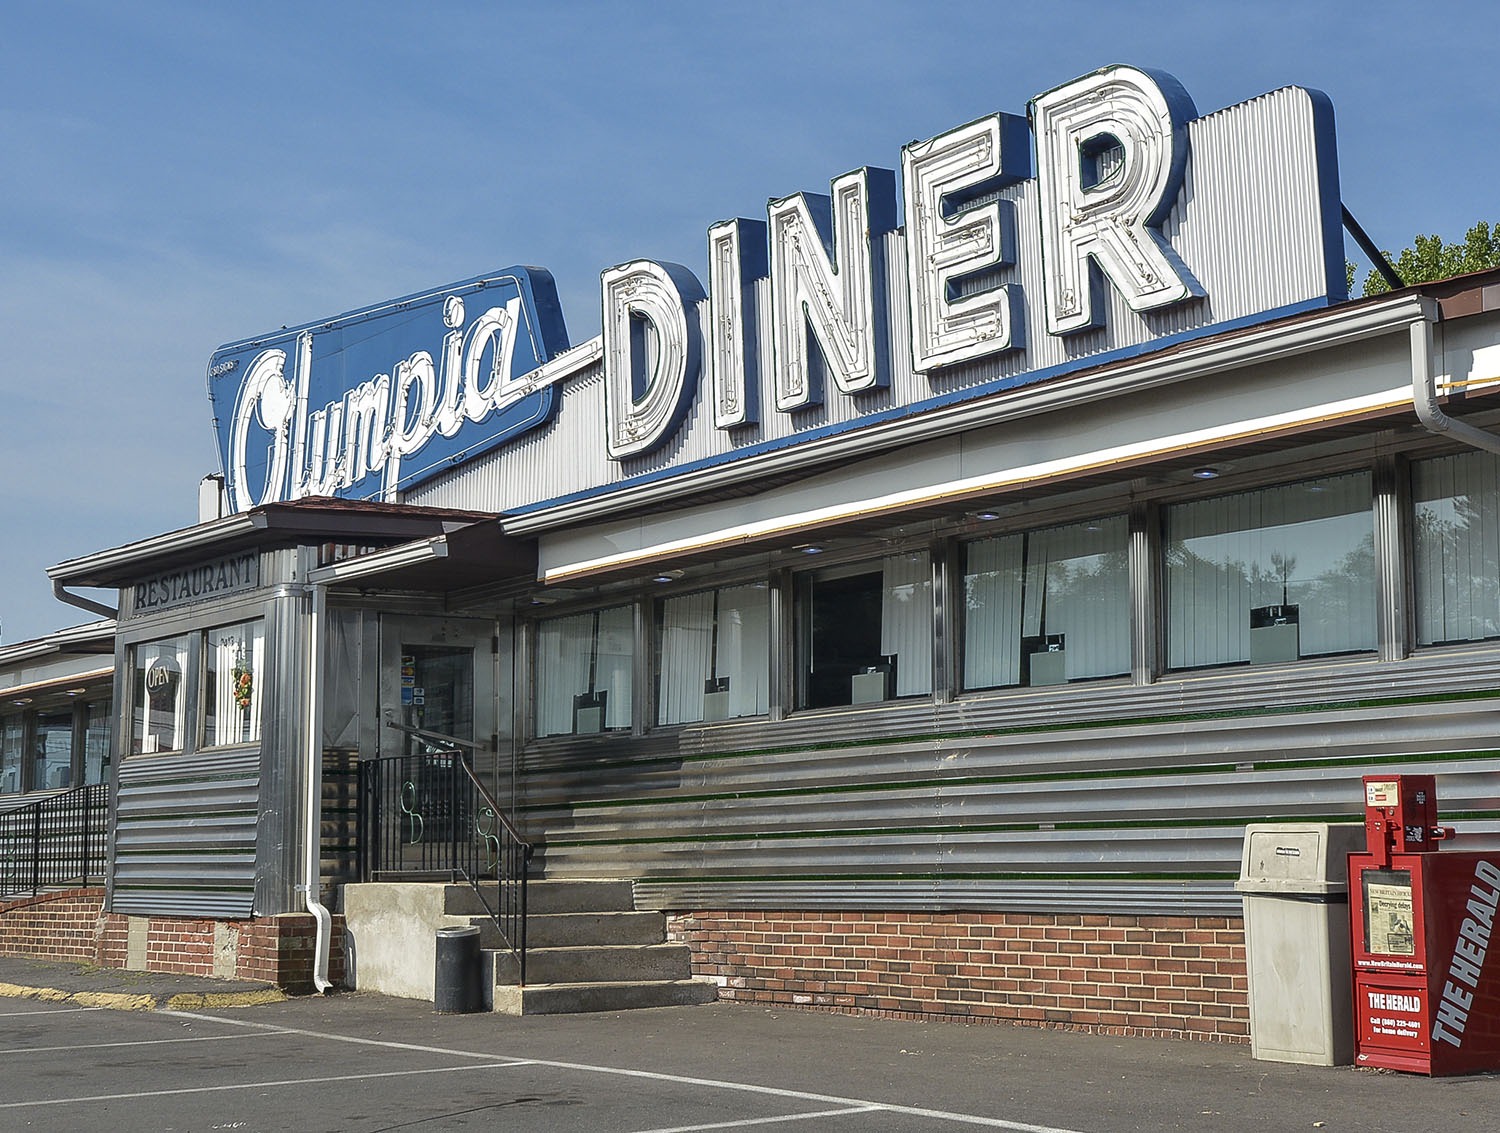 Nearby: Olympia Diner